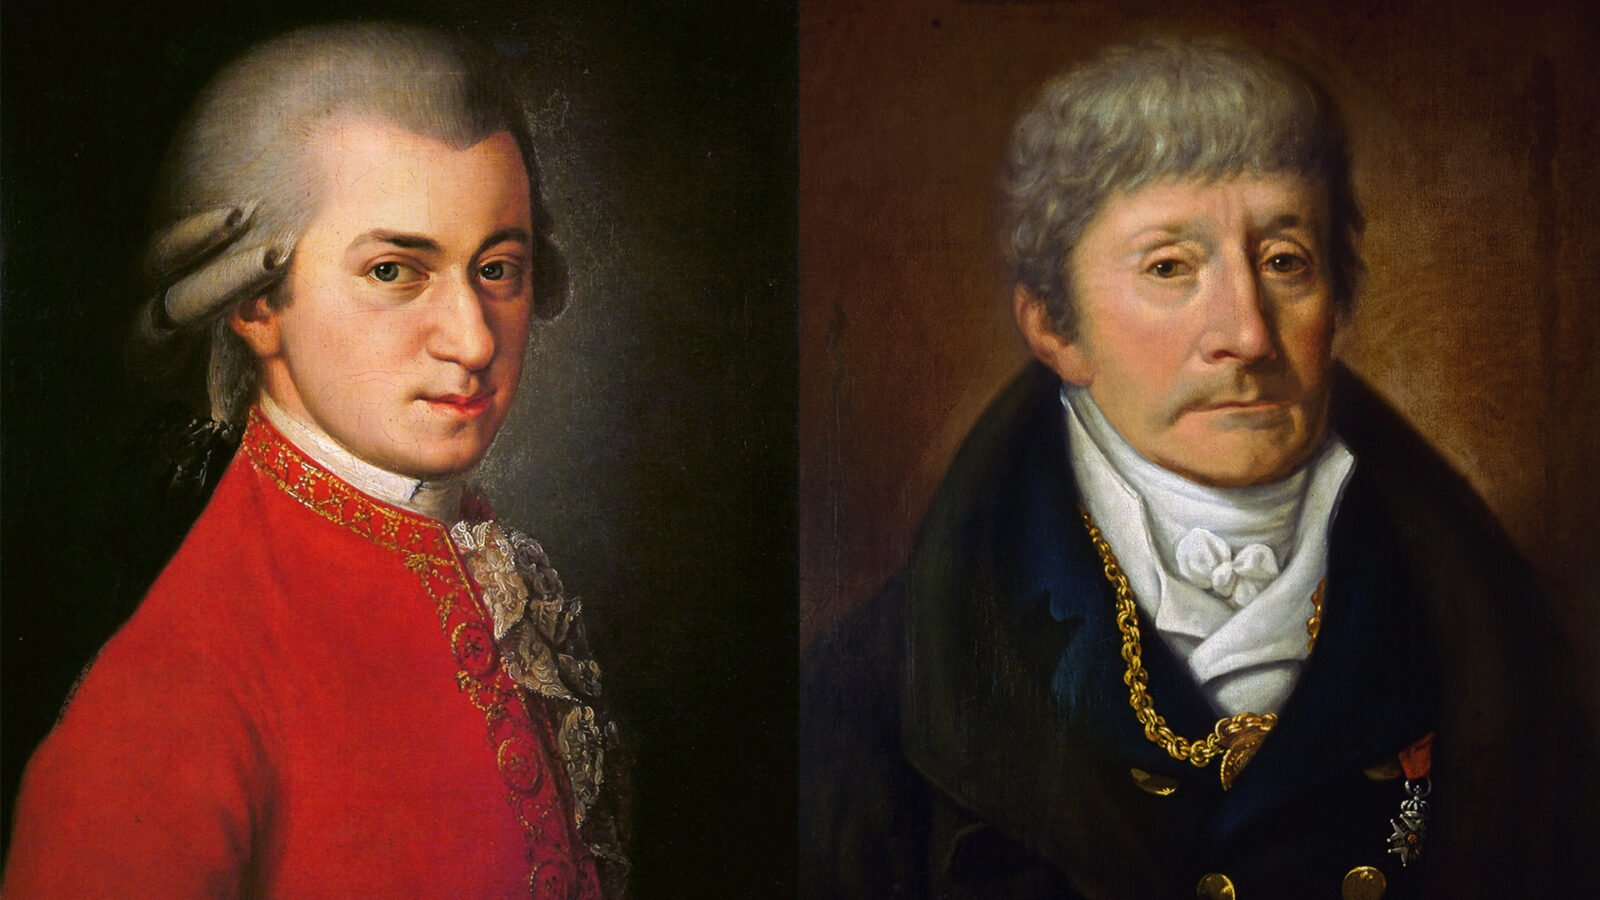 6 of the most famous feuds between classical composers